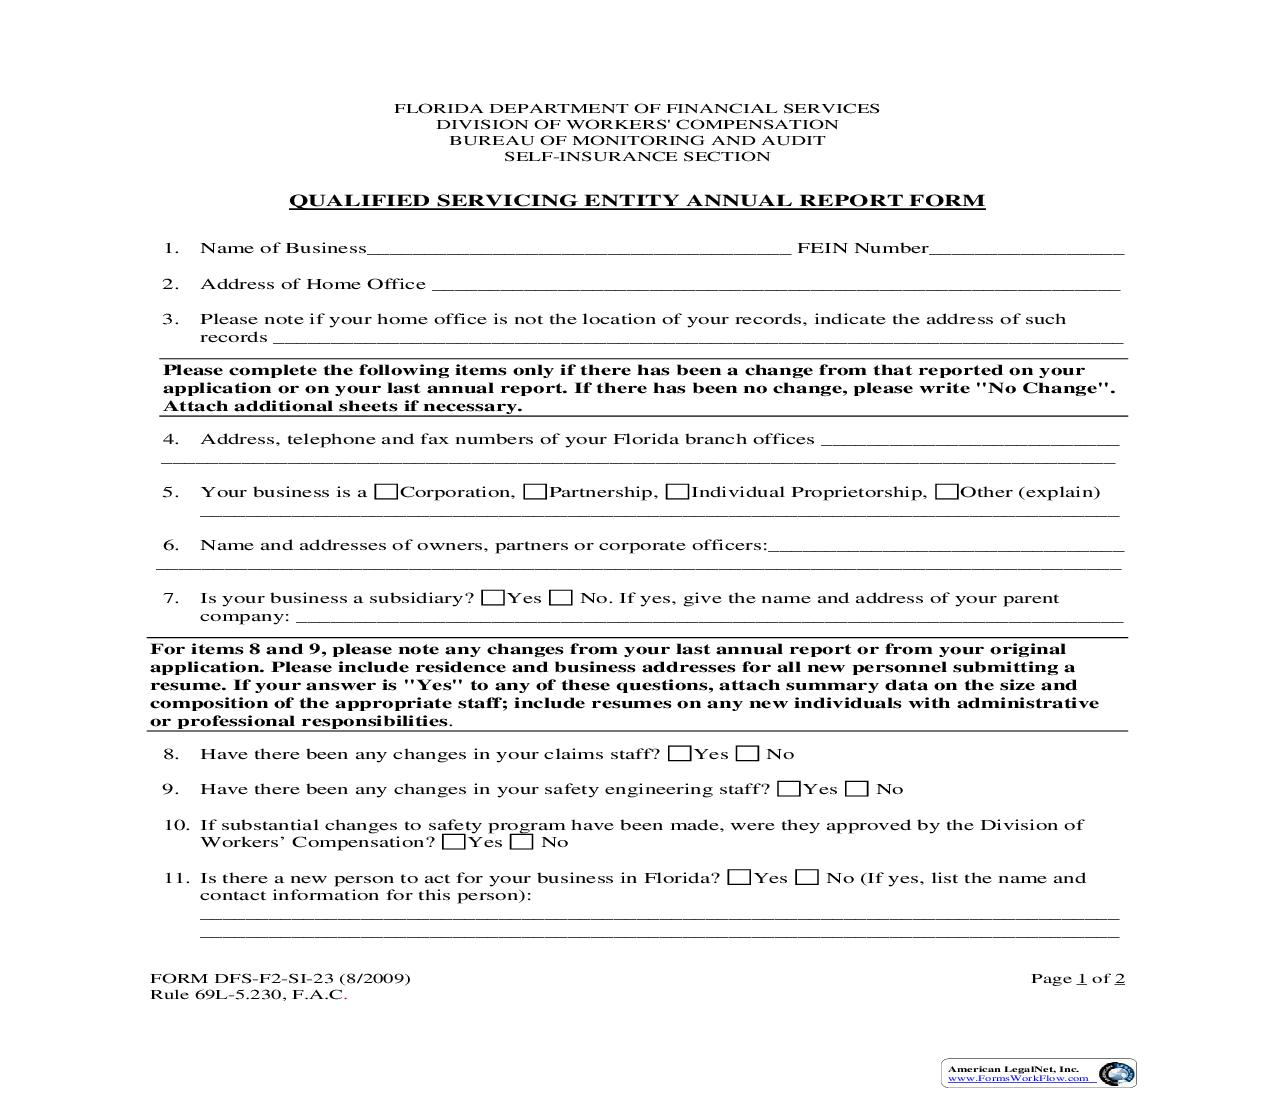 Qualified Servicing Entity Annual Report Form {SI-23} | Pdf Fpdf Doc Docx | Florida